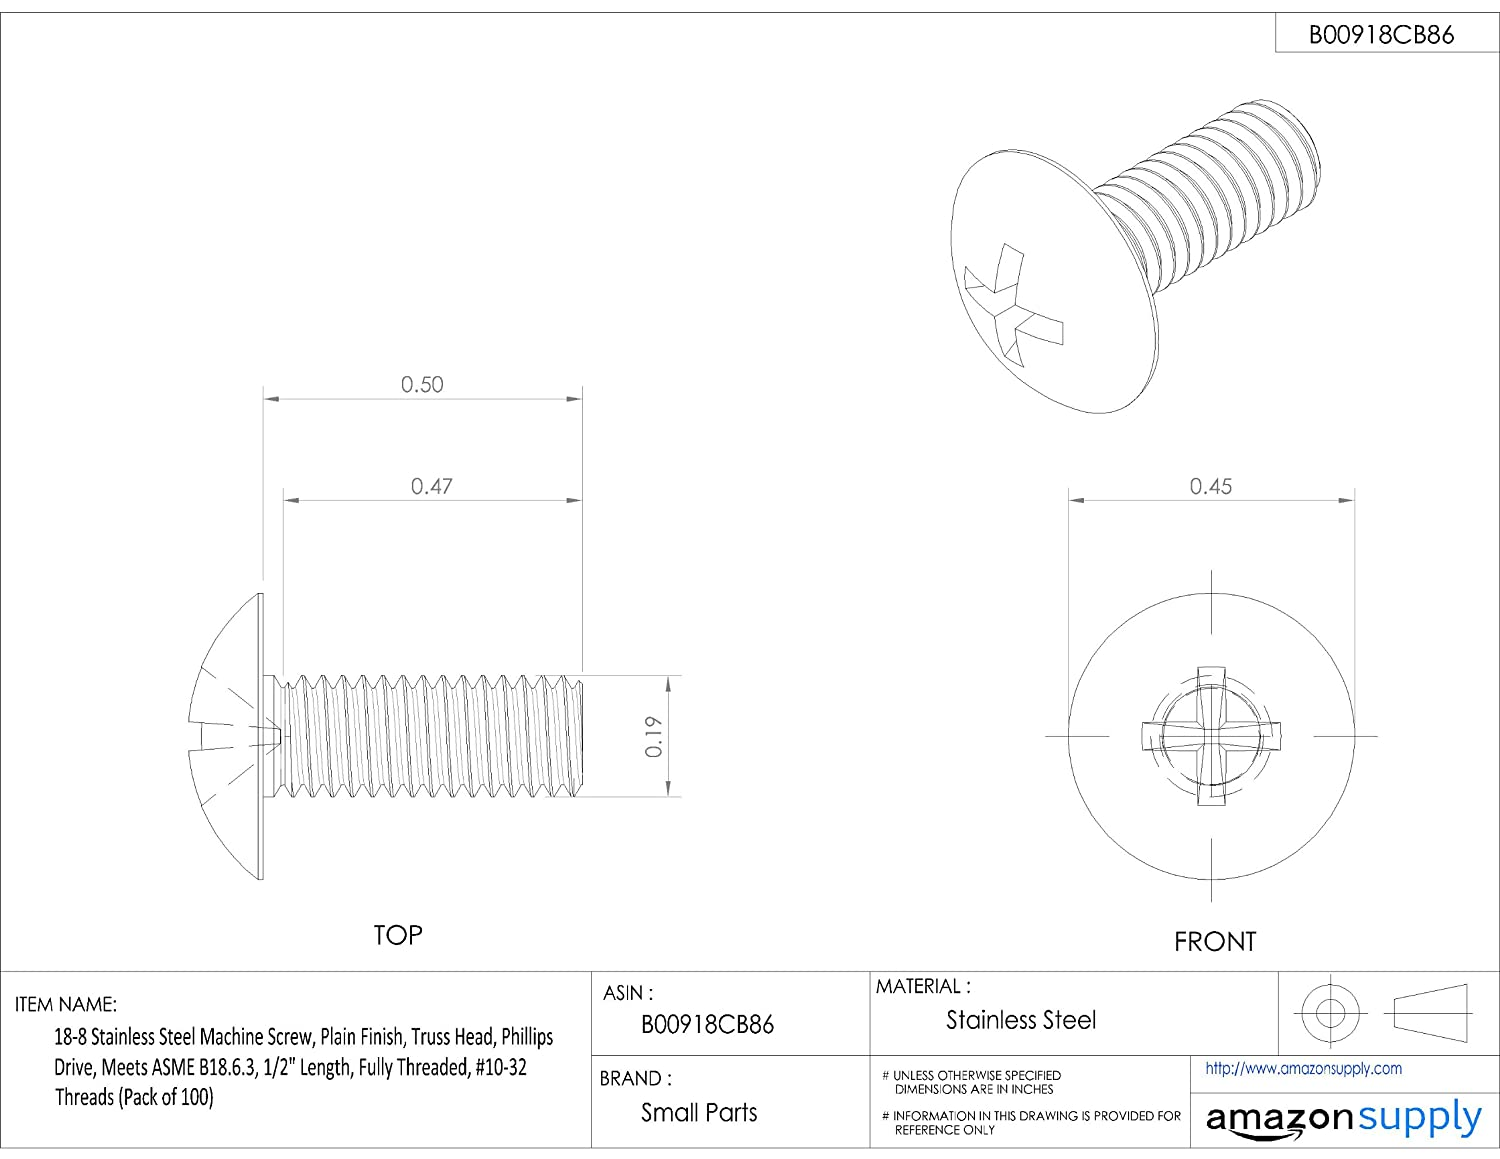 #10-32 UNF Threads Fully Threaded Pack of 100 Phillips Drive Meets ASME B18.6.3 1//2 Length Plain Finish Truss Head 18-8 Stainless Steel Machine Screw